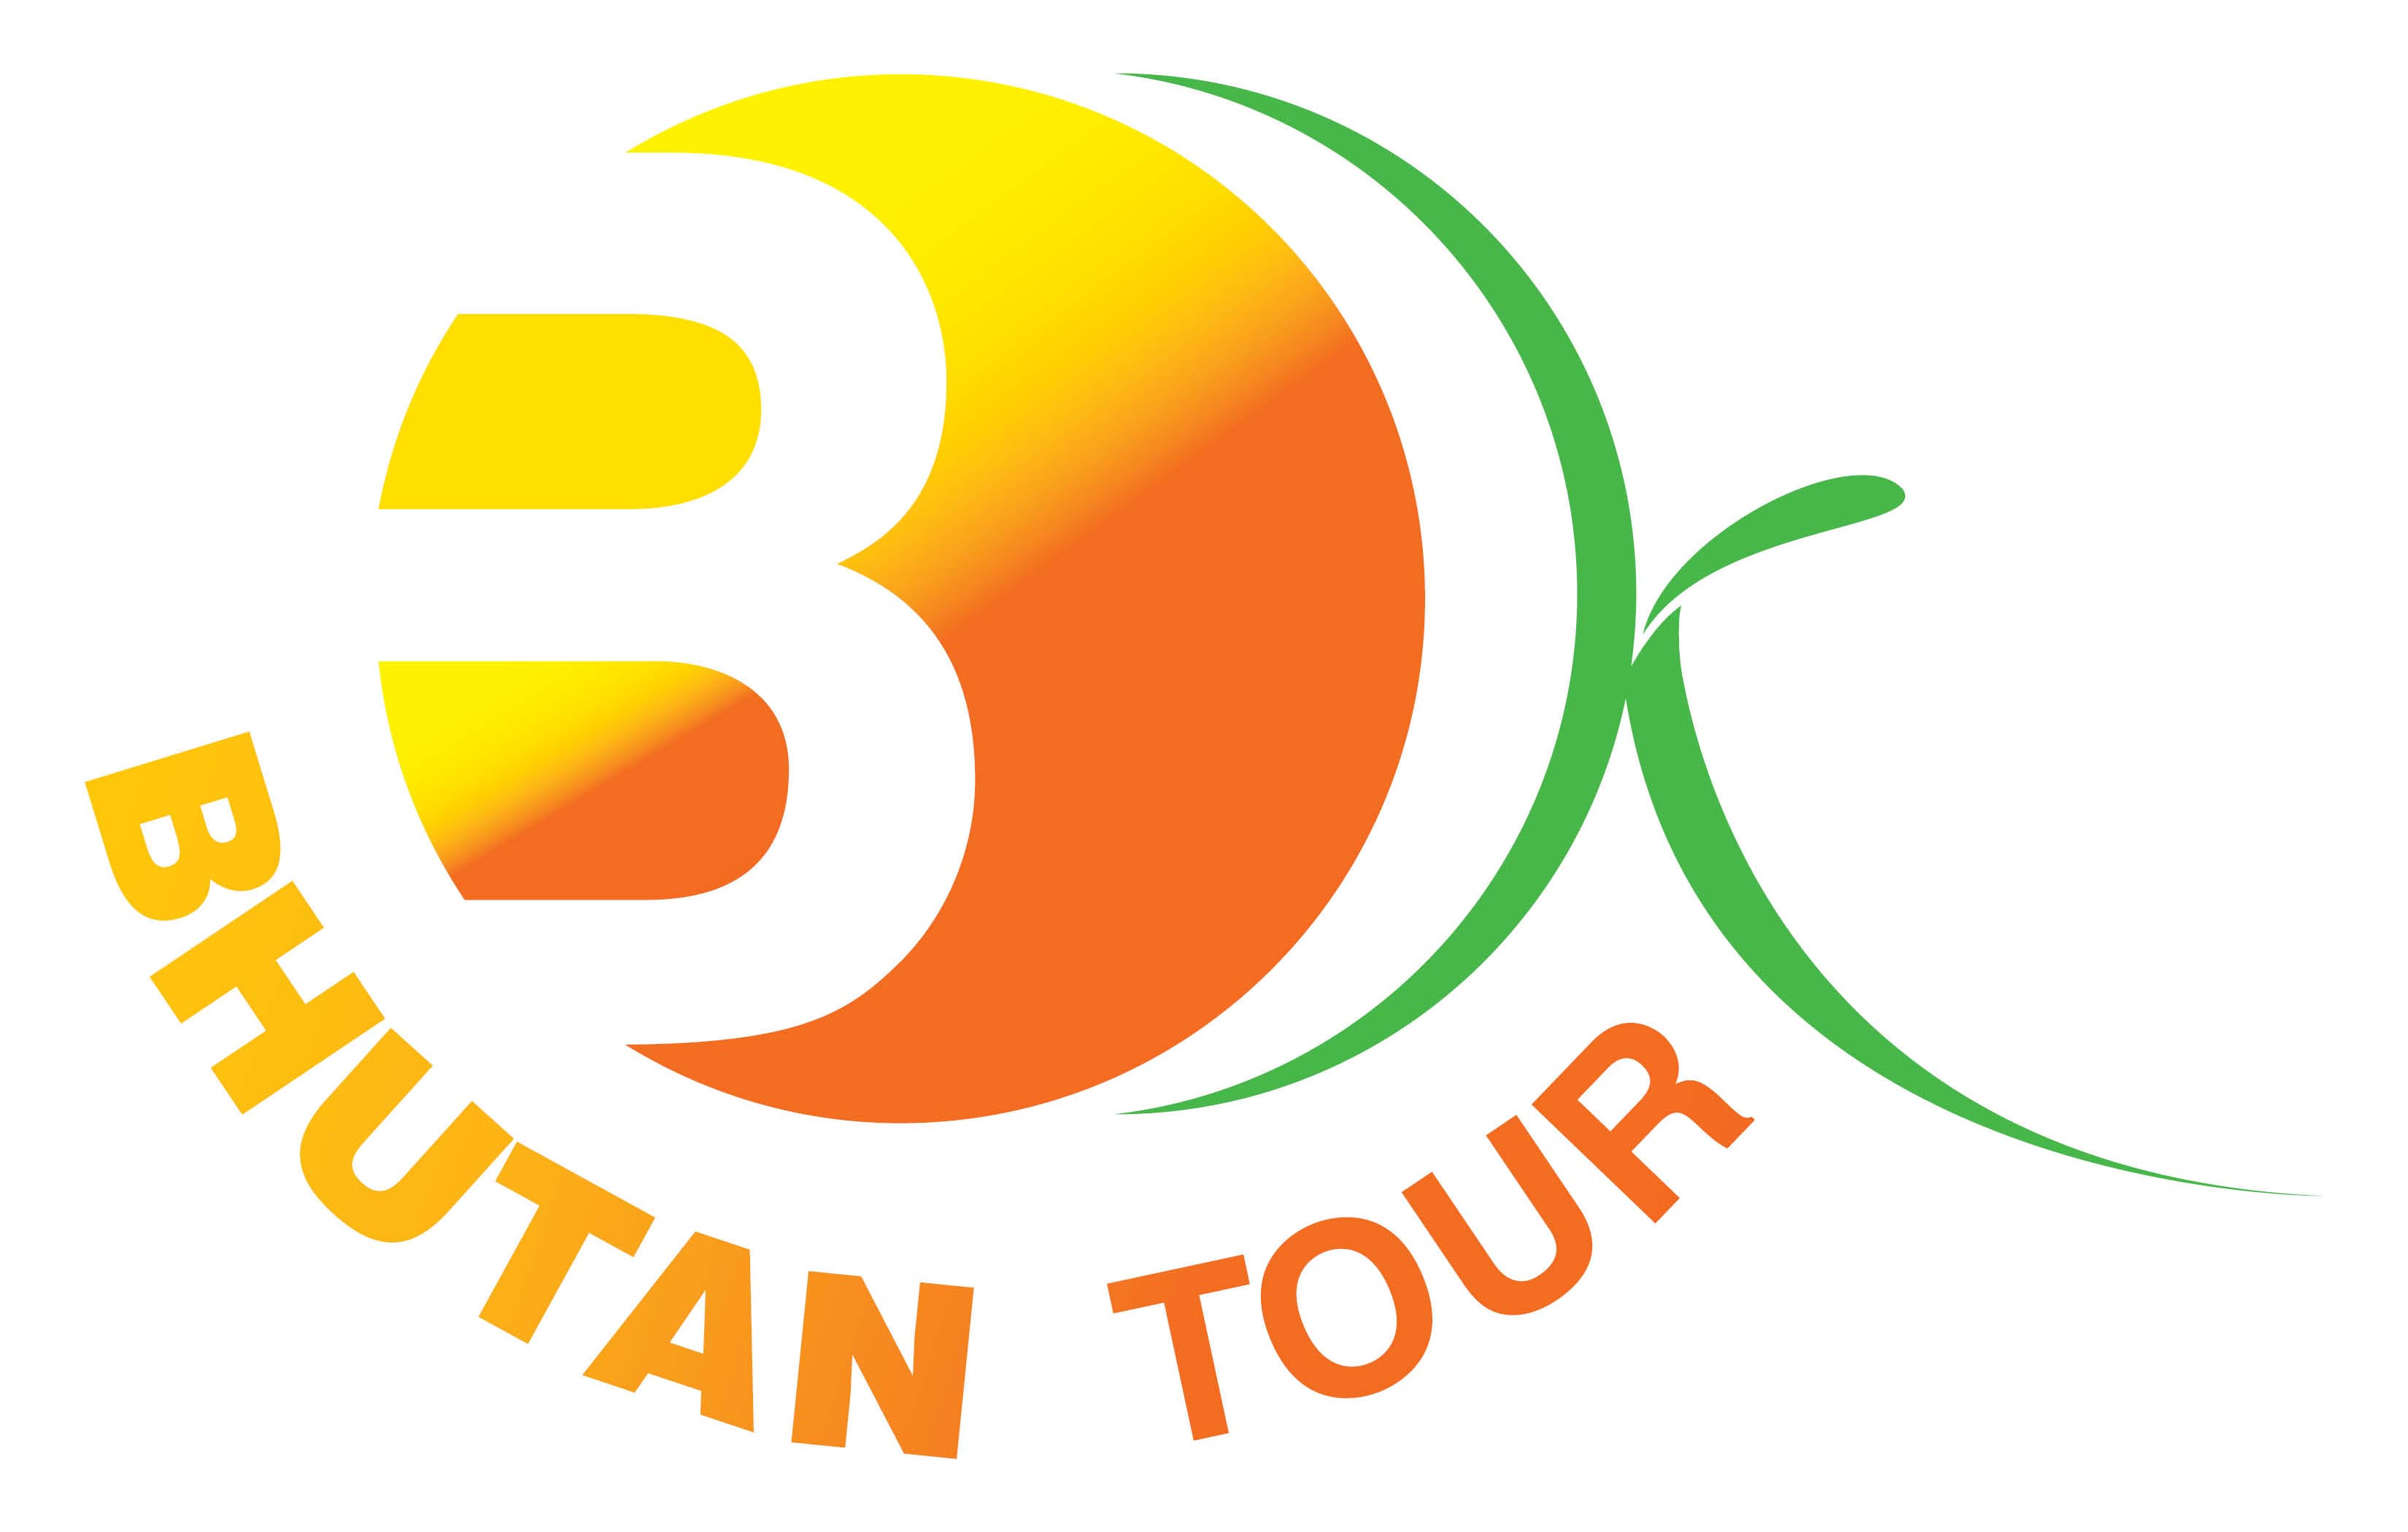 Book bhutan tour logo